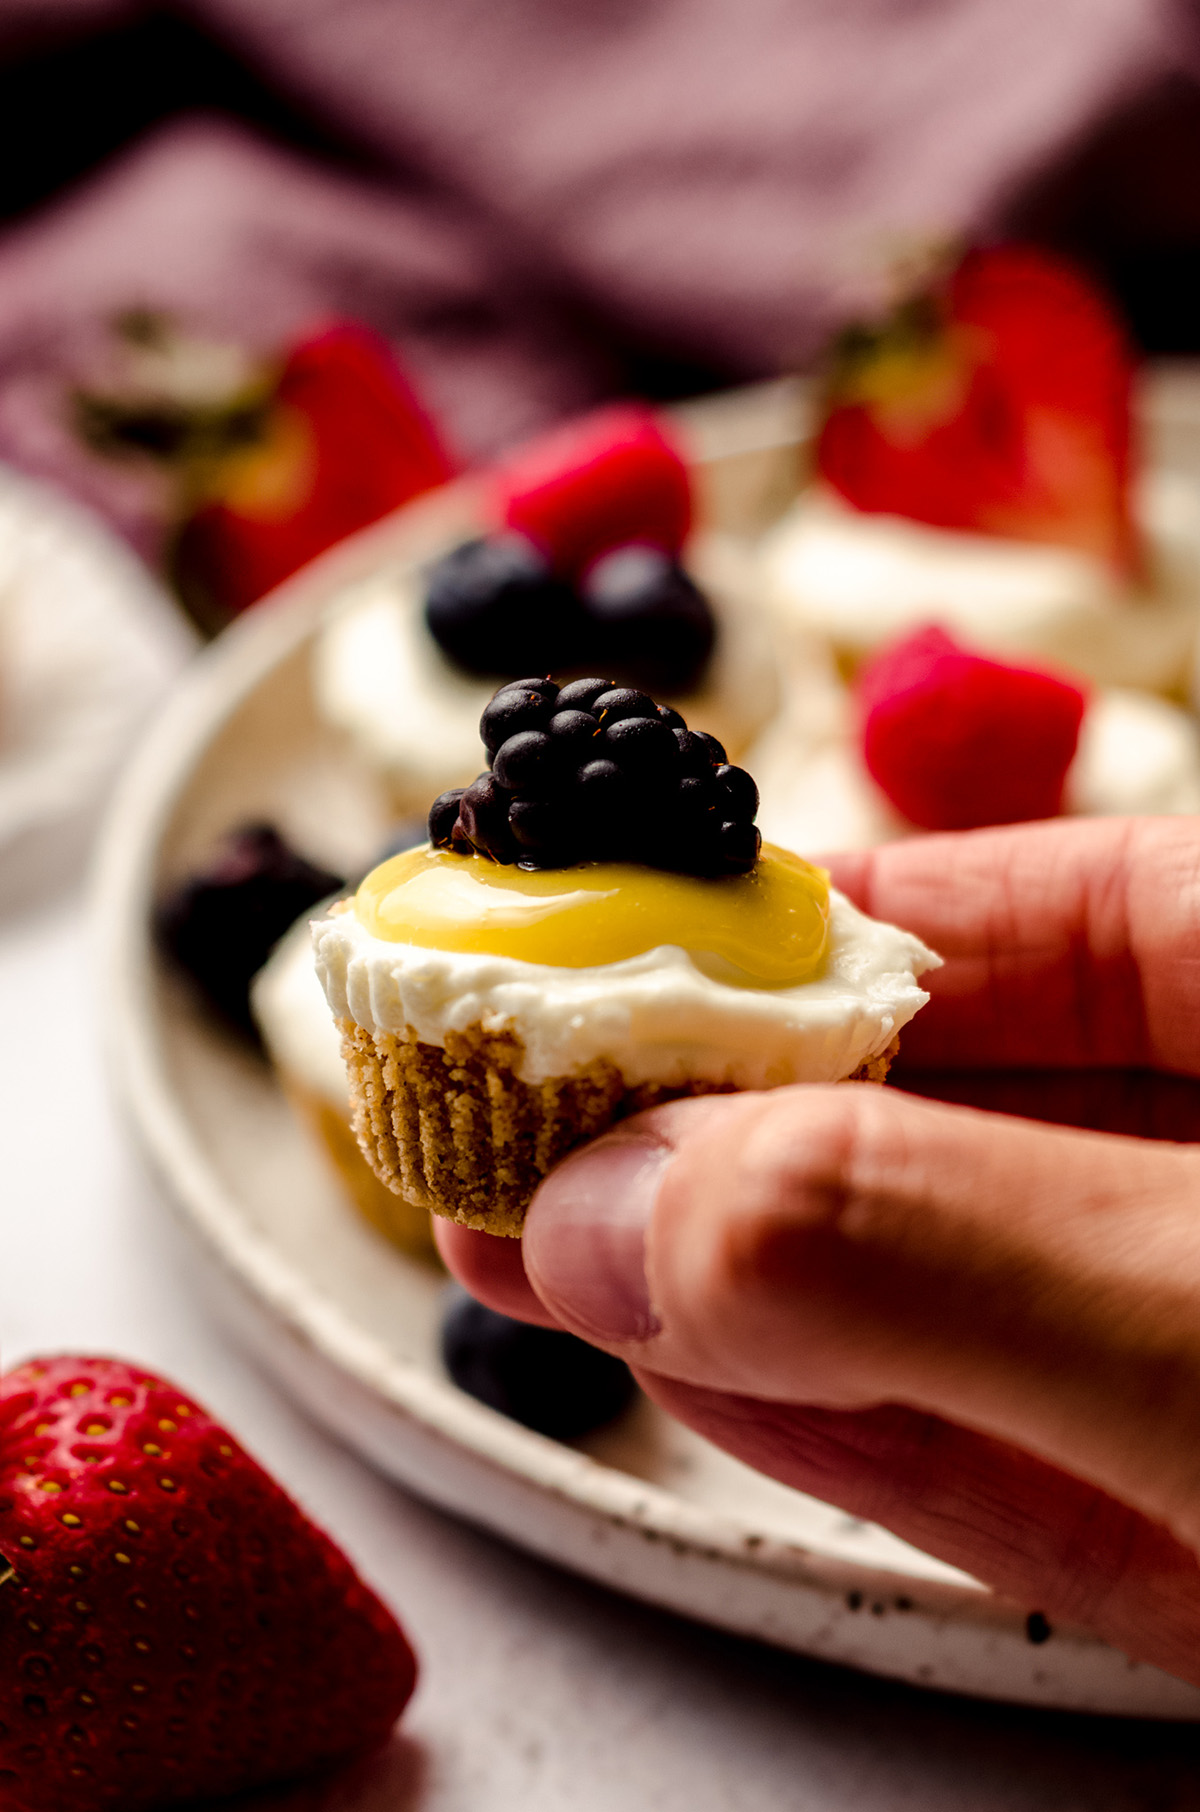 fingers holding a no bake cheesecake bite with lemon curd and a blackberry on top